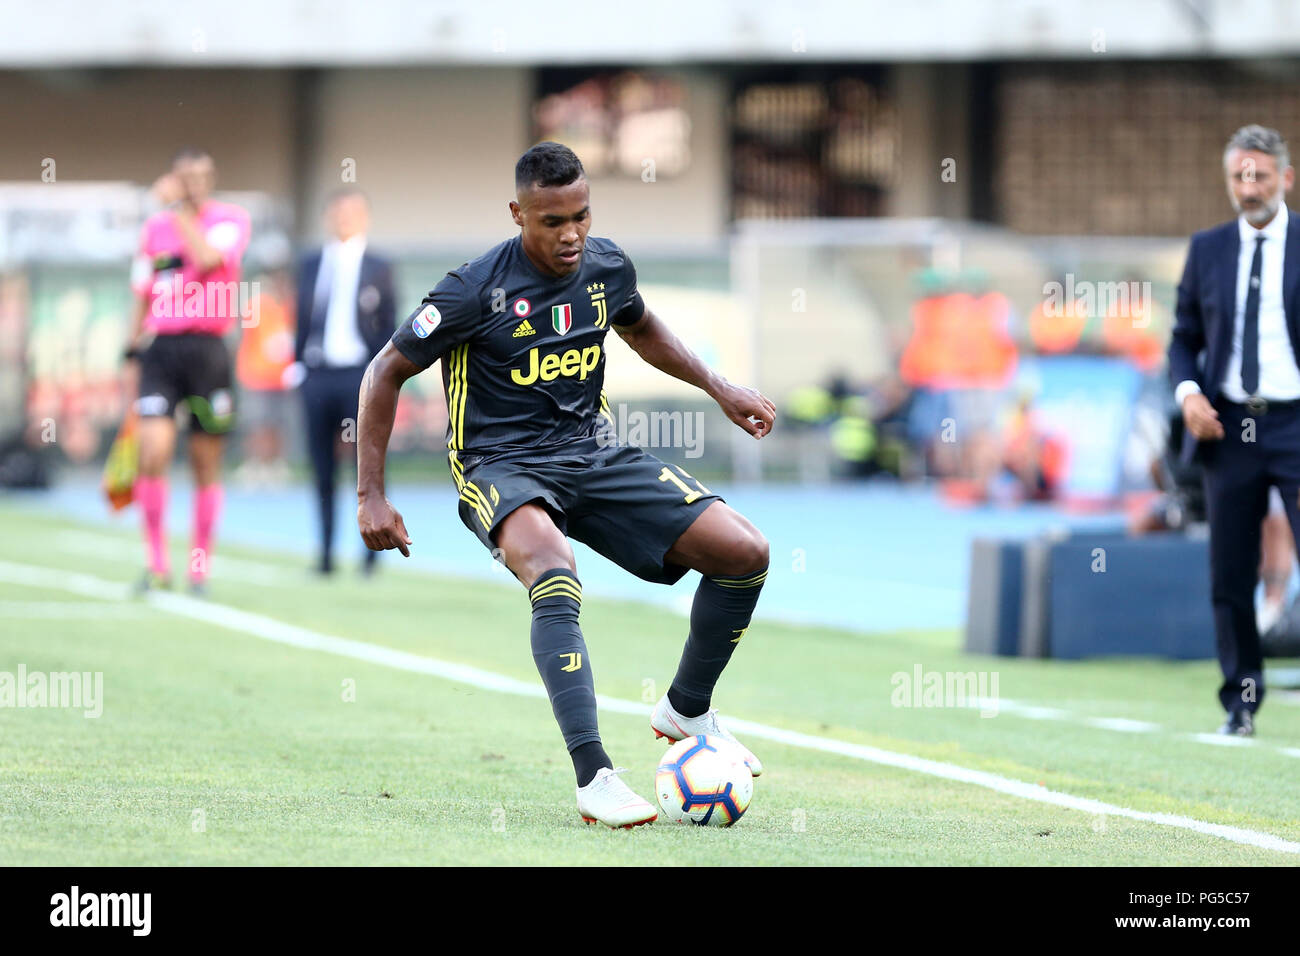 Alex Sandro  of Juventus FC in action during the Serie A football match between Ac Chievo Verona and Juventus Fc. - Stock Image